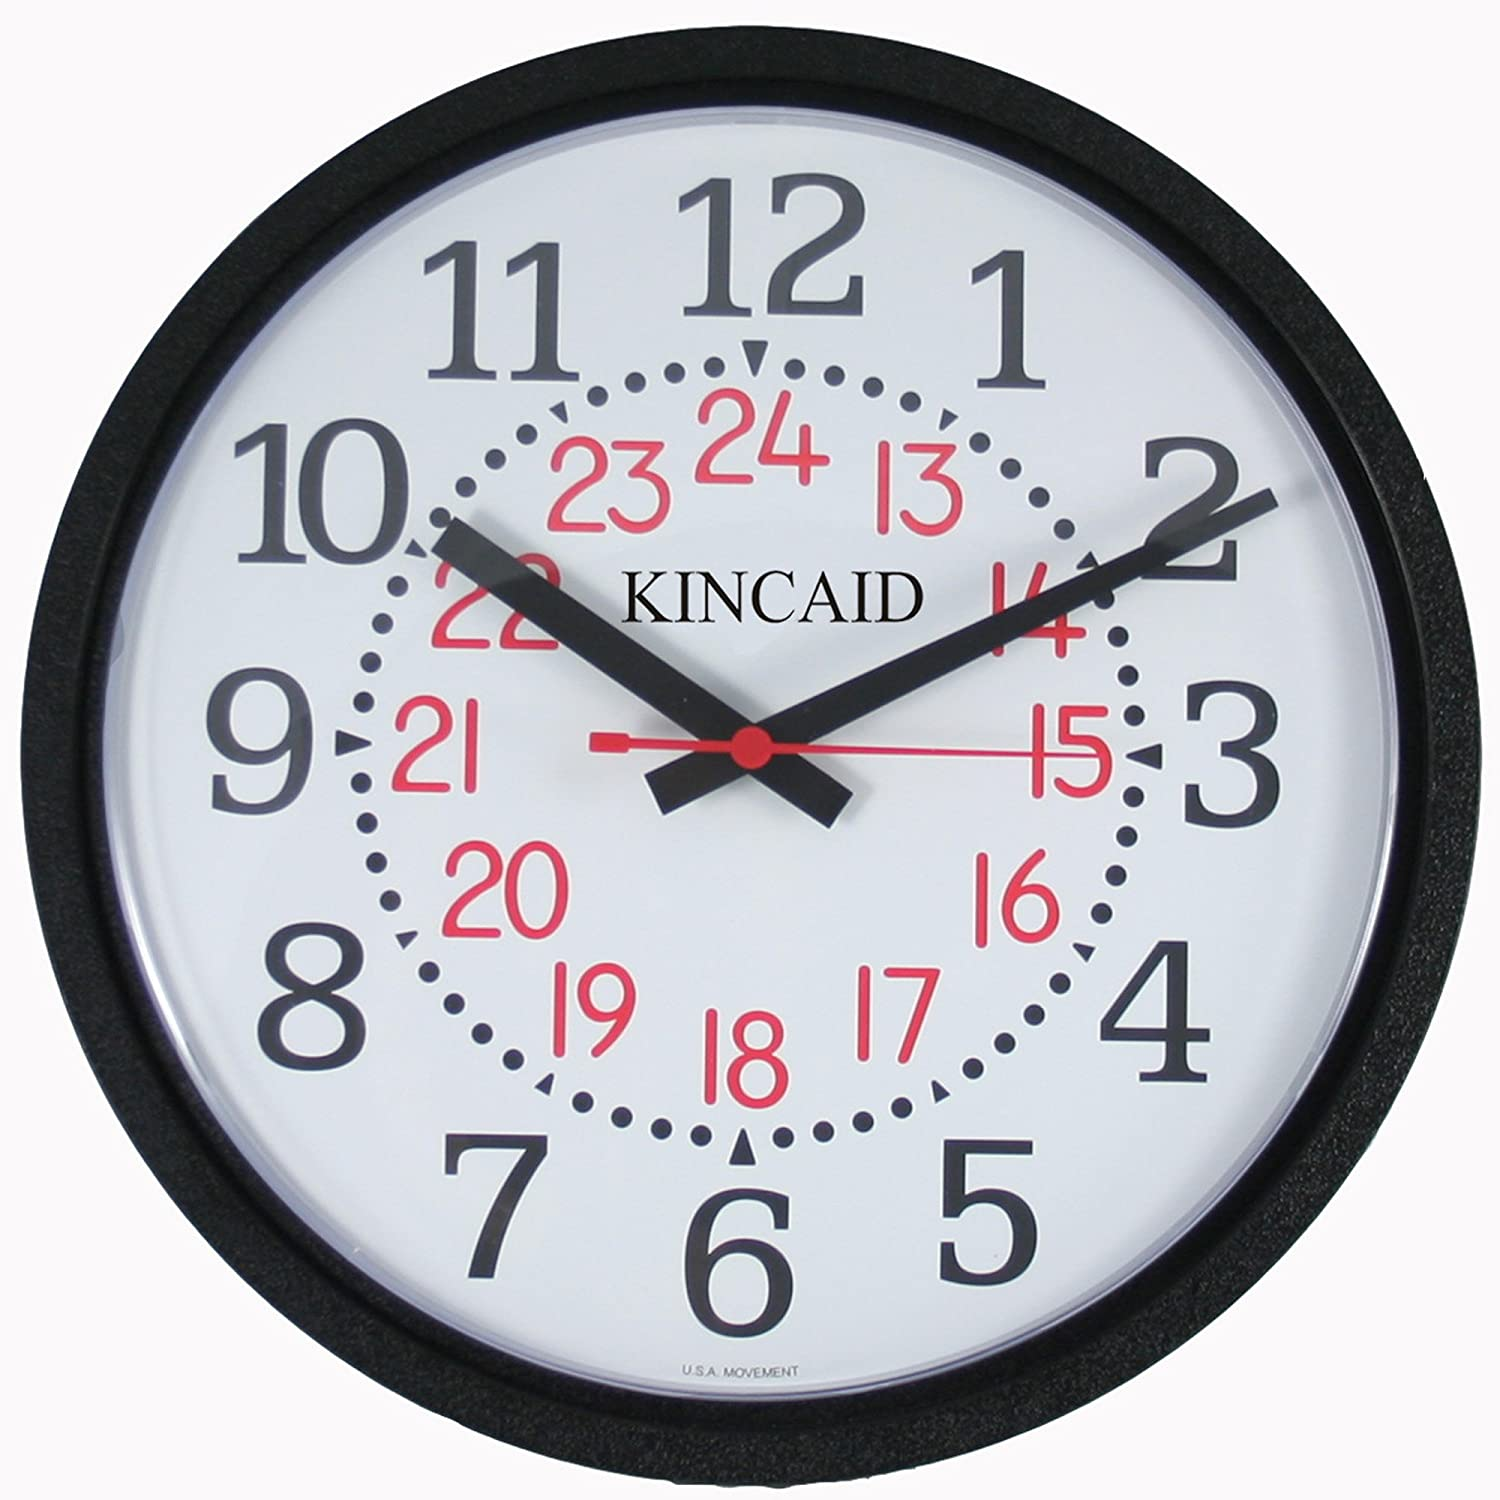 Military Time Clock >> Amazon Com Kincaid Wall Clock With Military Time Home Kitchen